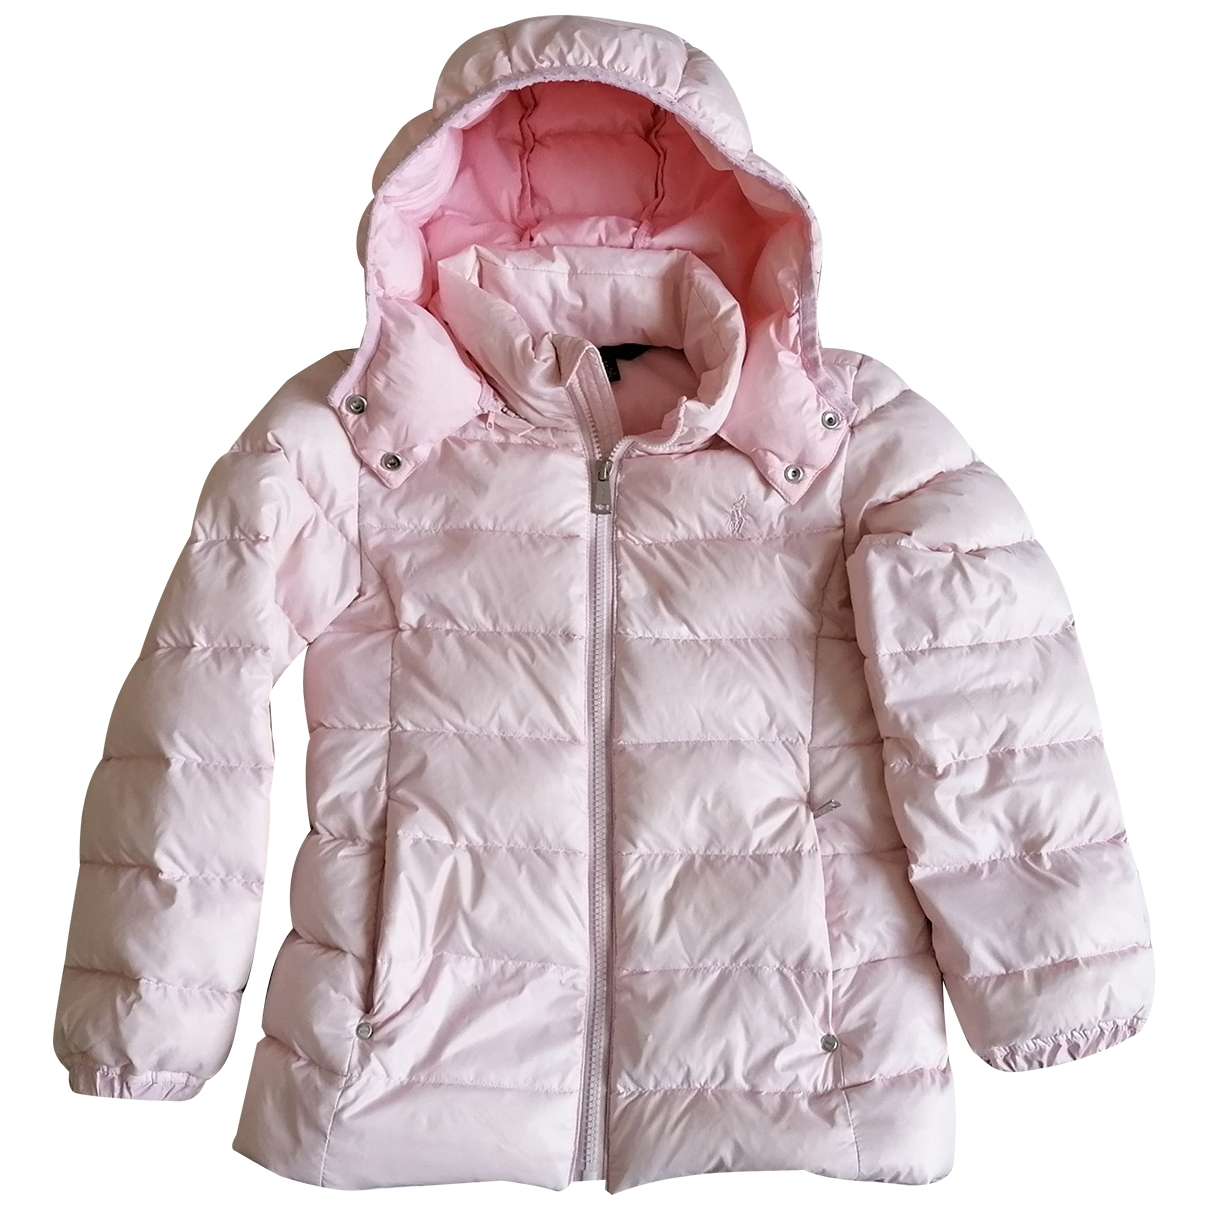 Polo Ralph Lauren \N Pink jacket & coat for Kids 6 years - up to 114cm FR